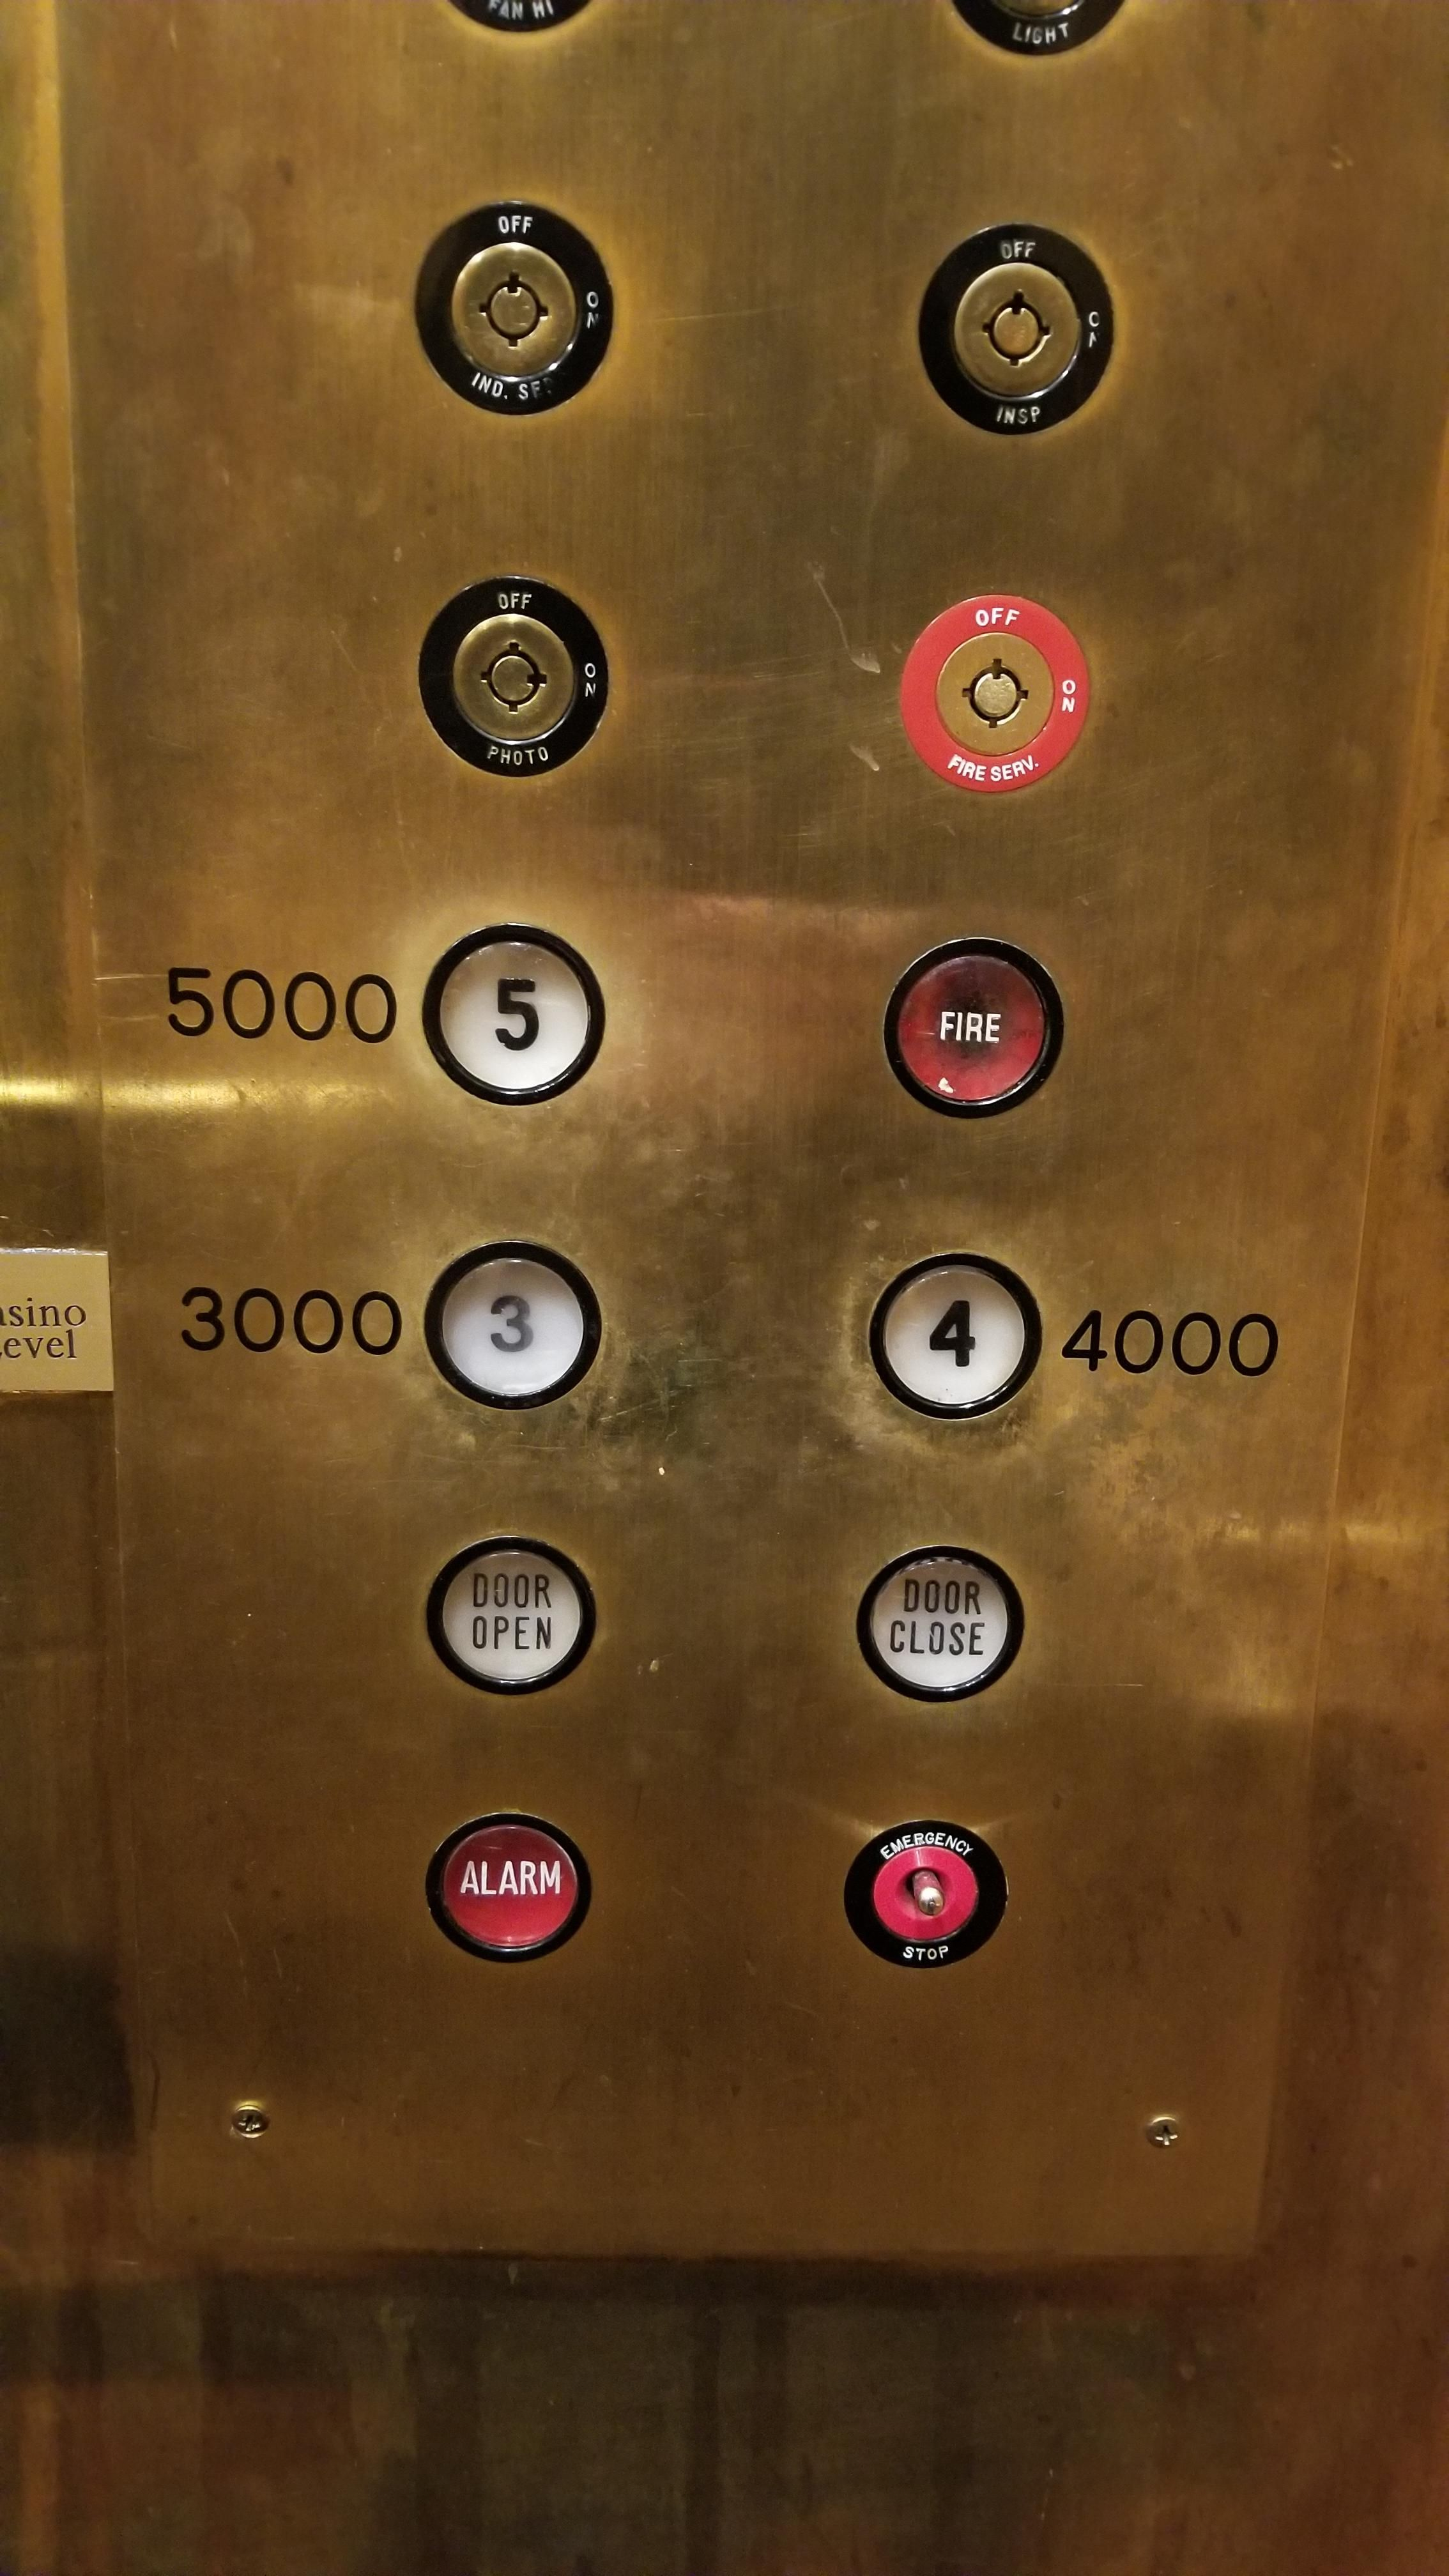 This elevator at the casino I'm staying at. 3 is the first